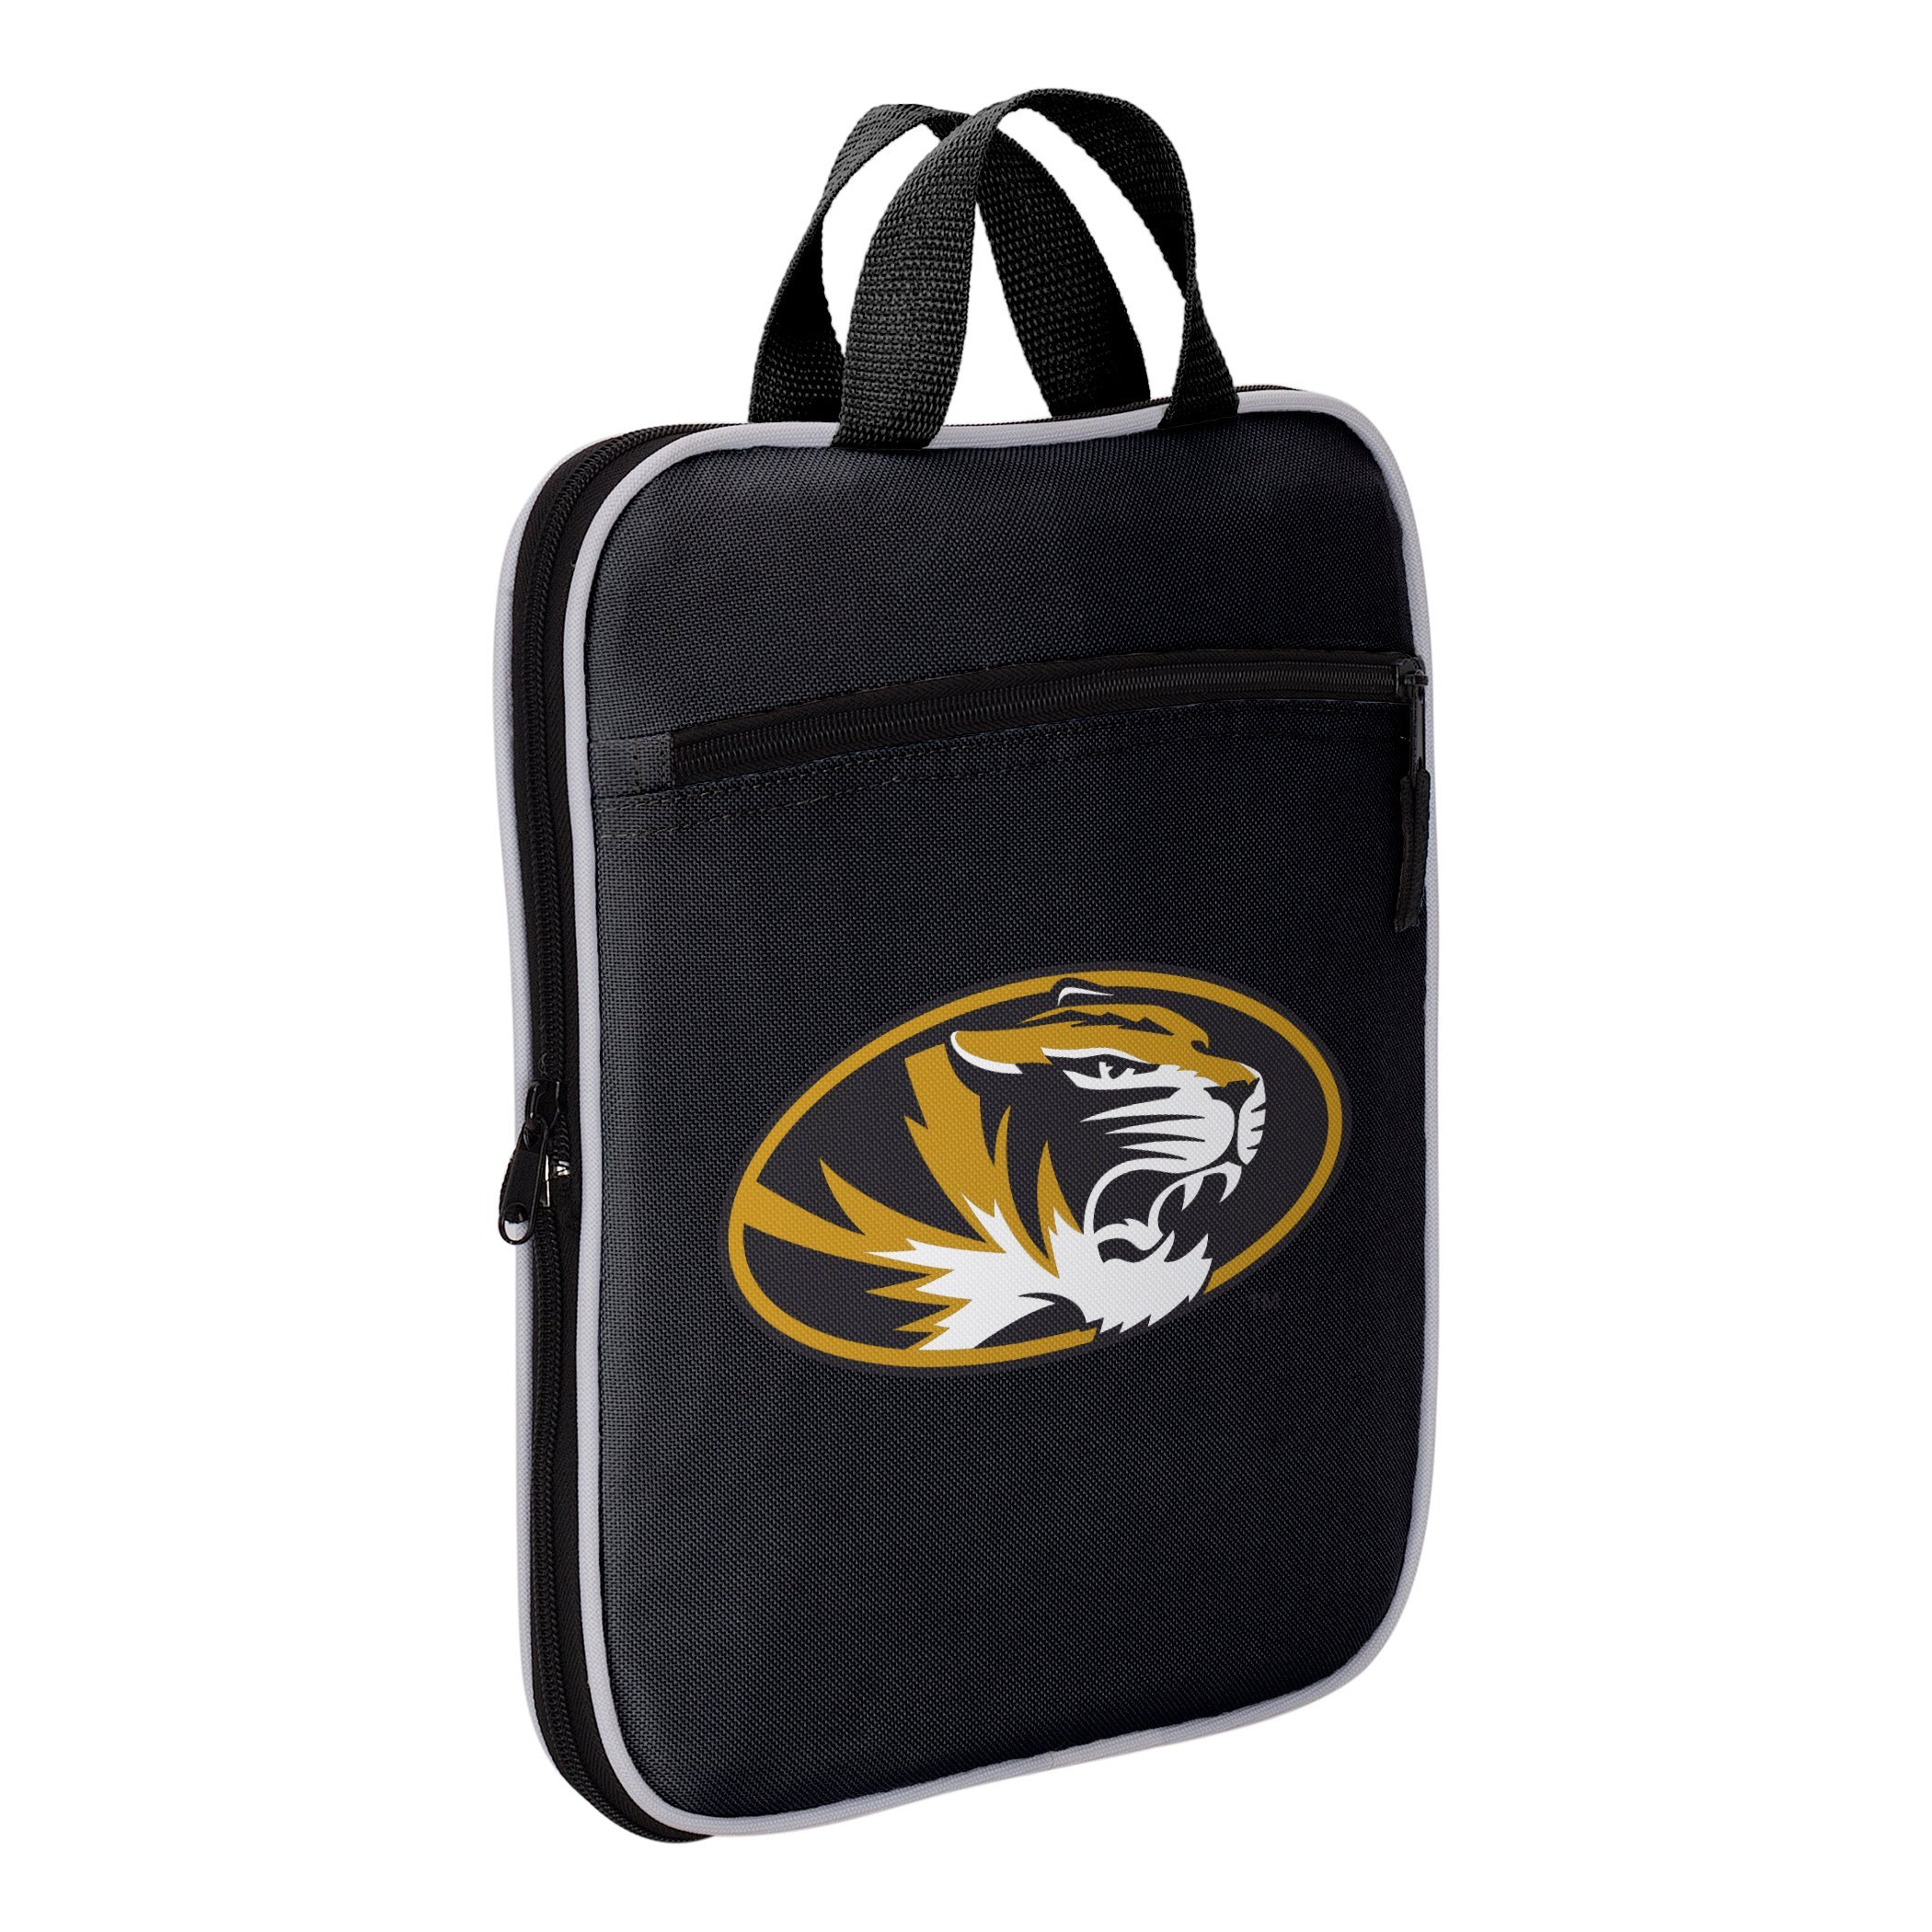 Officially Licensed NCAA Missouri Tigers Steal Duffel Bag by The Northwest Company (Image #4)